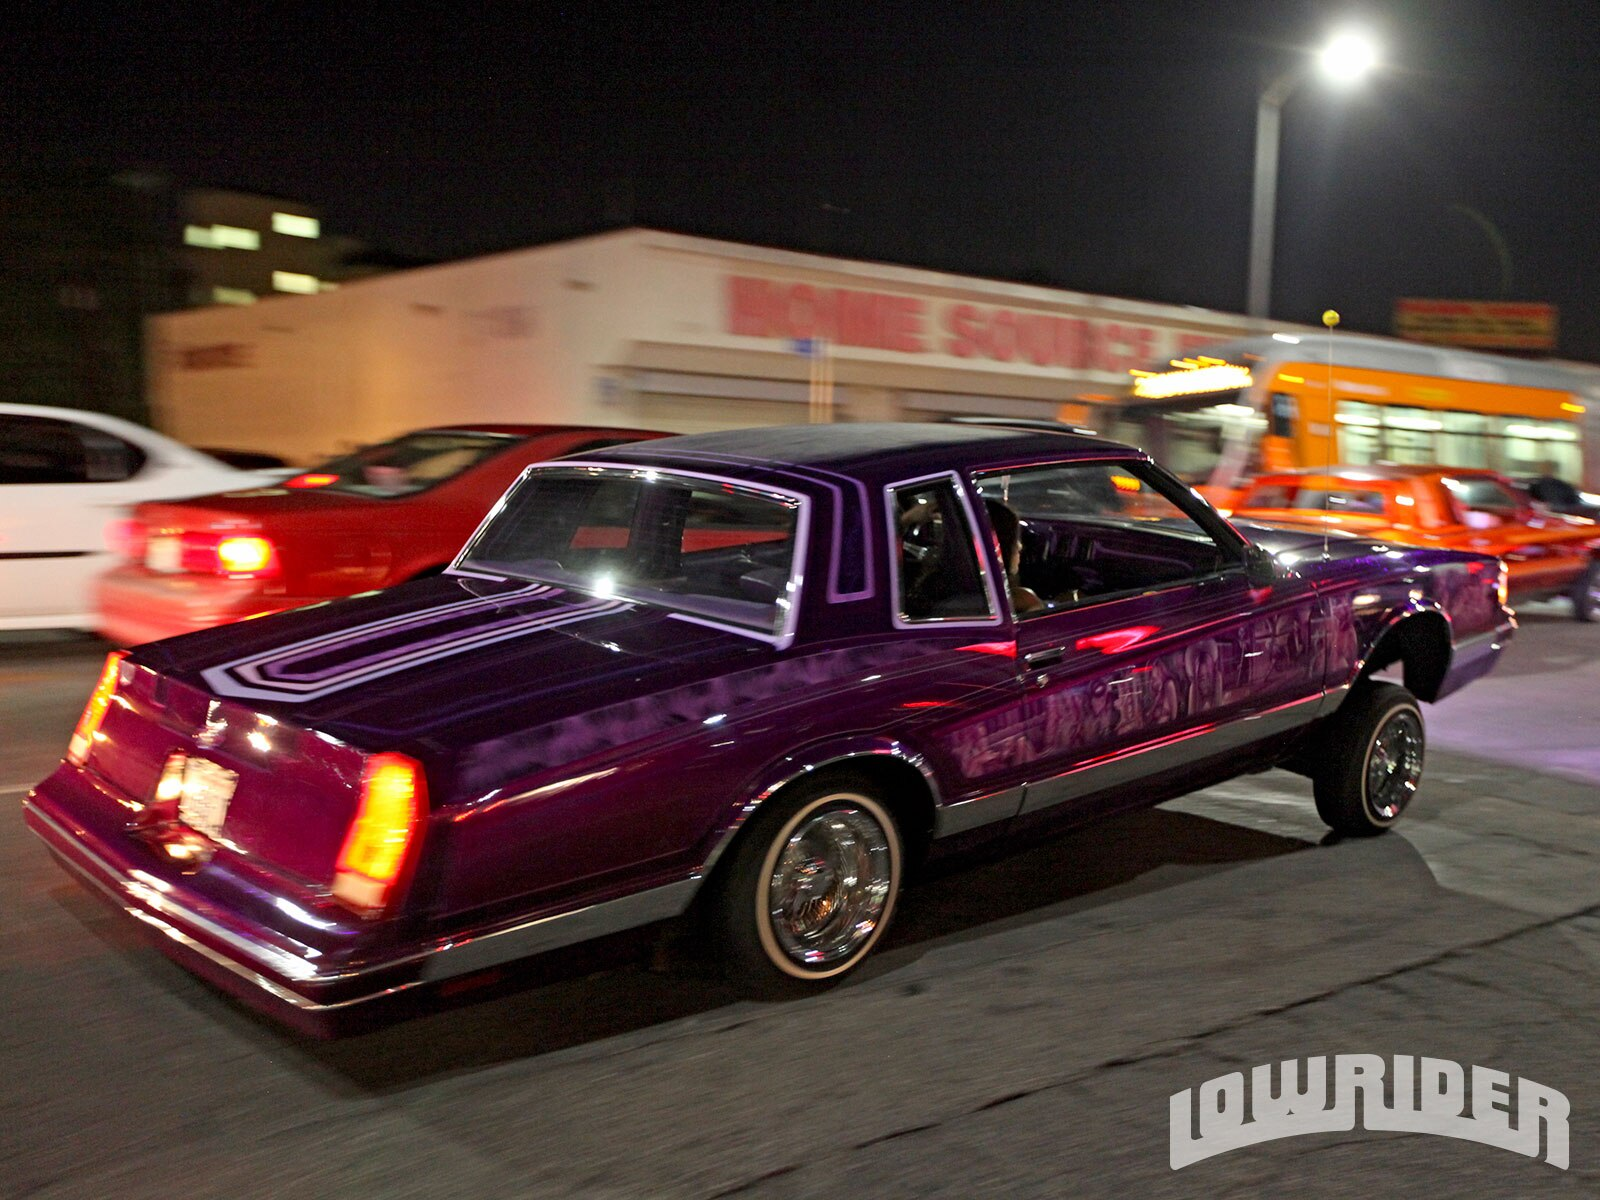 Gangsta Girls And Lowriders Wallpaper Lowrider Street Cred South Central La Lowrider Magazine